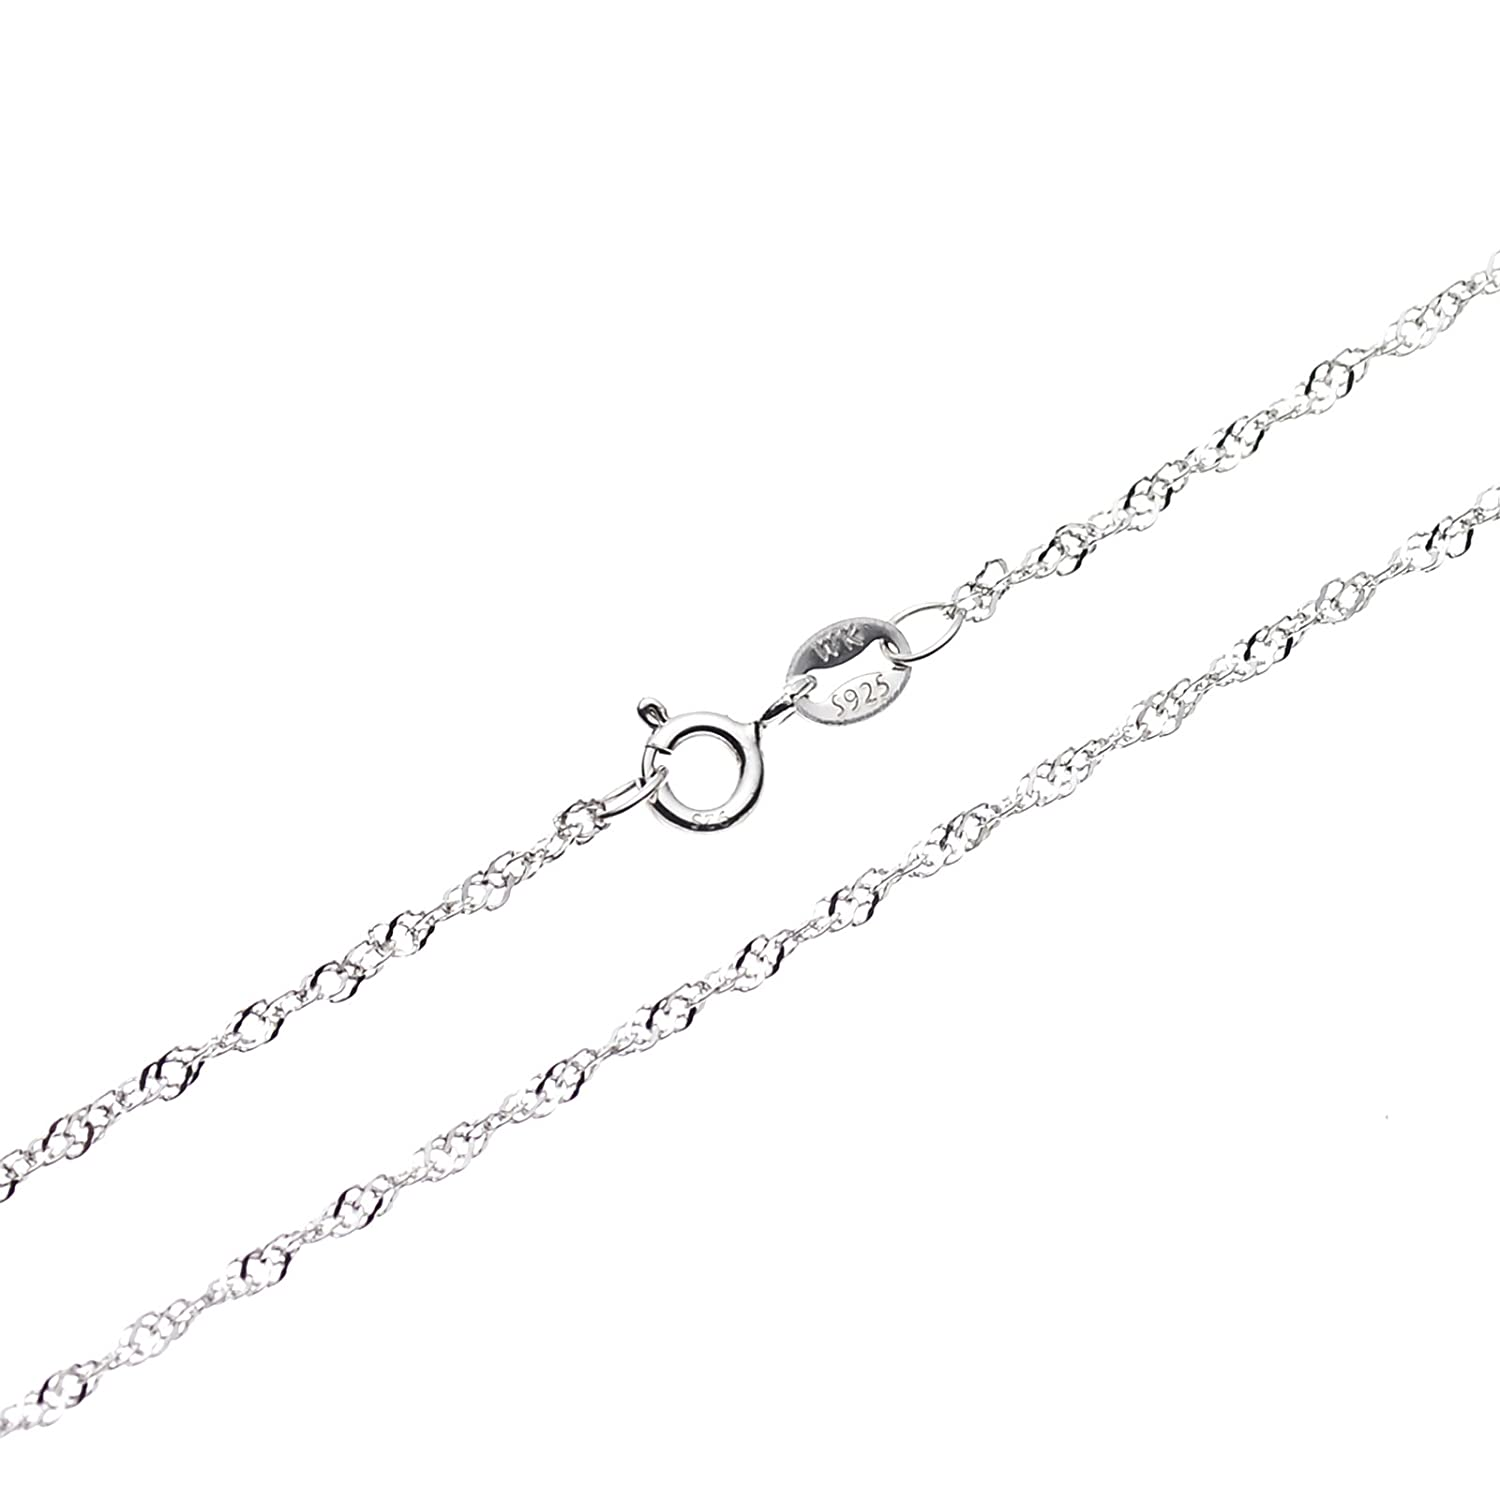 SWEETV 925 Sterling Silver 1.3mm Singapore Chain Necklace Jewelry - Italian Crafted, Spring Ring Clasp, Sizes from : 16 18 20 22 24 inch/40 45 50 55 60 cm 20 SVCXL17002W13CP12C